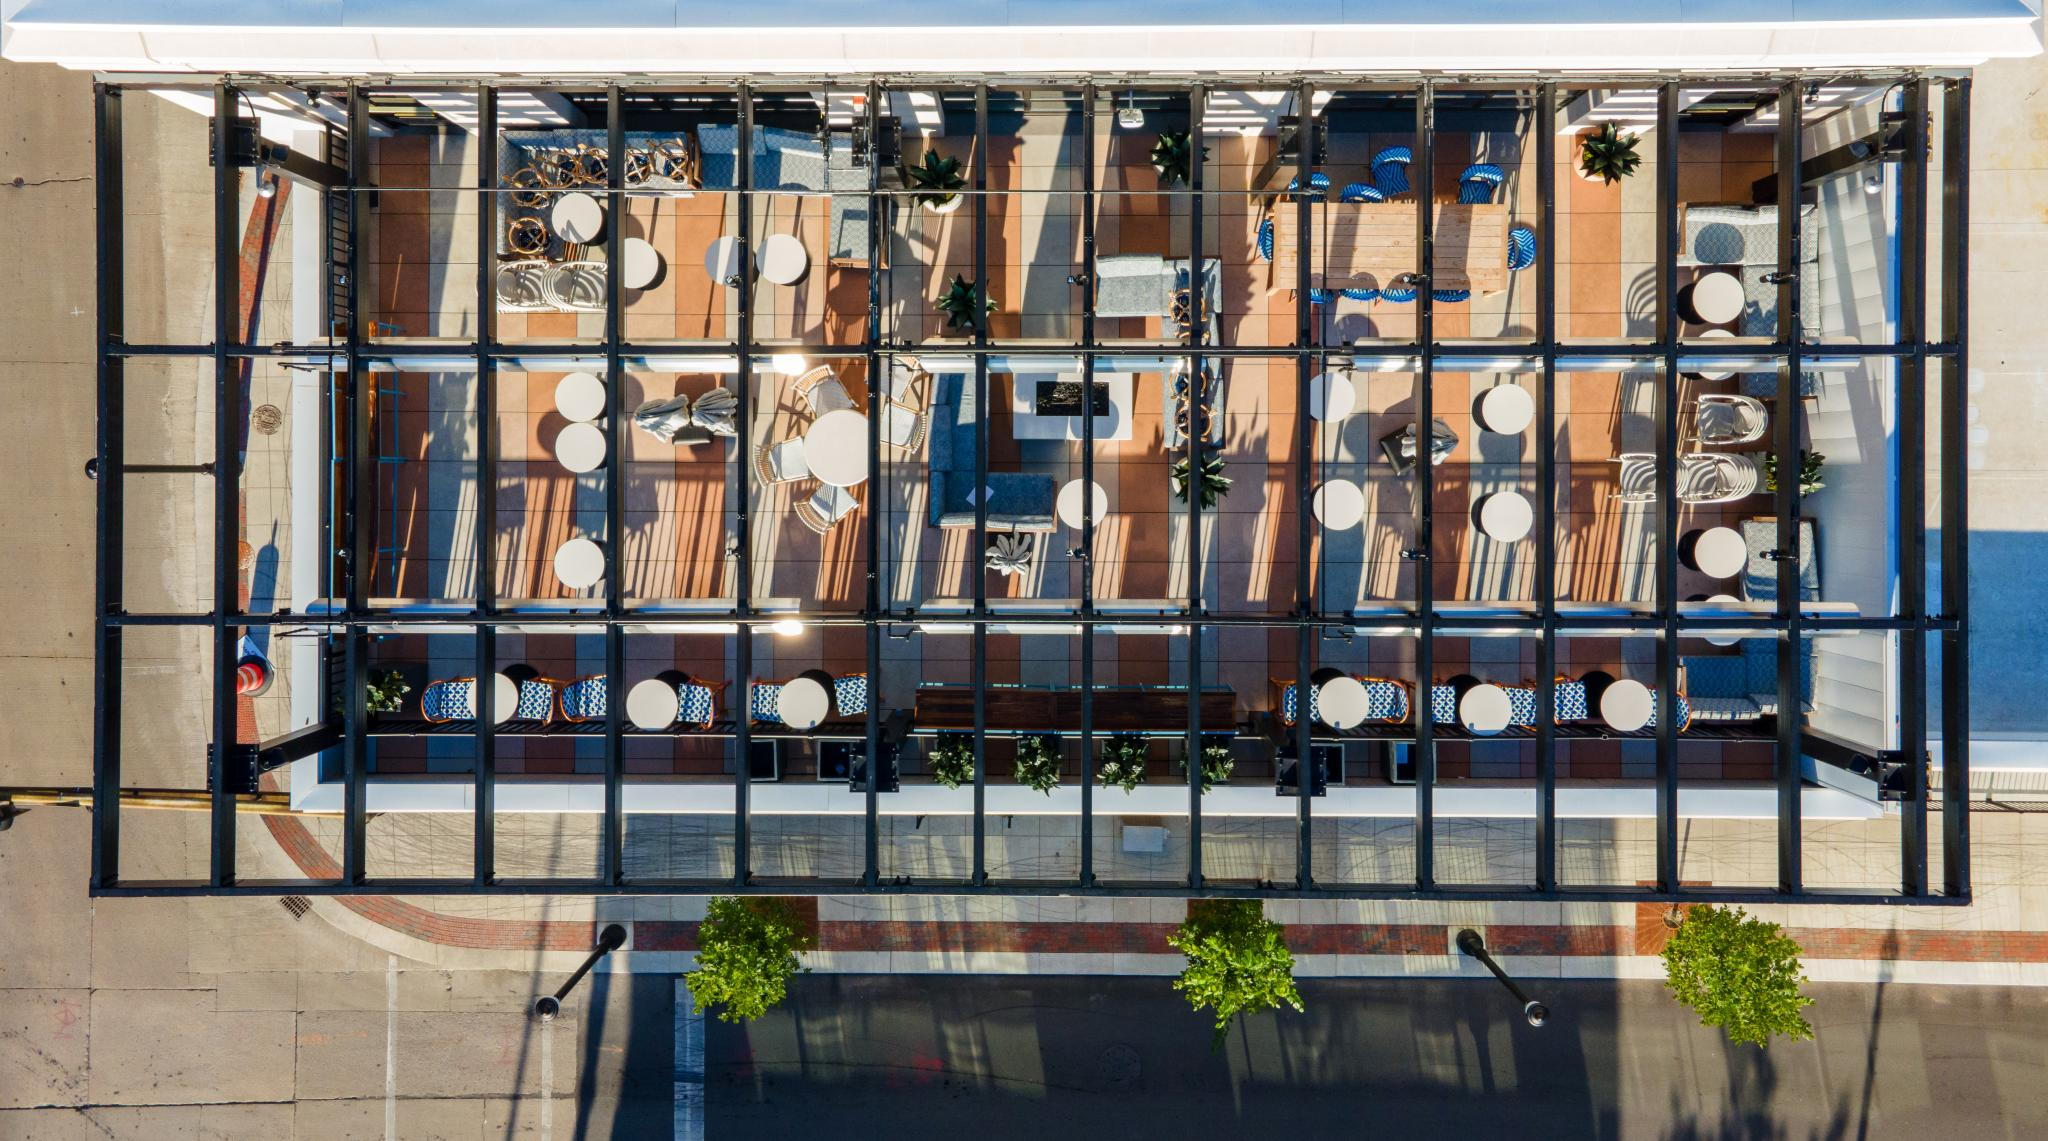 an image of a bird's eye view of a patio space